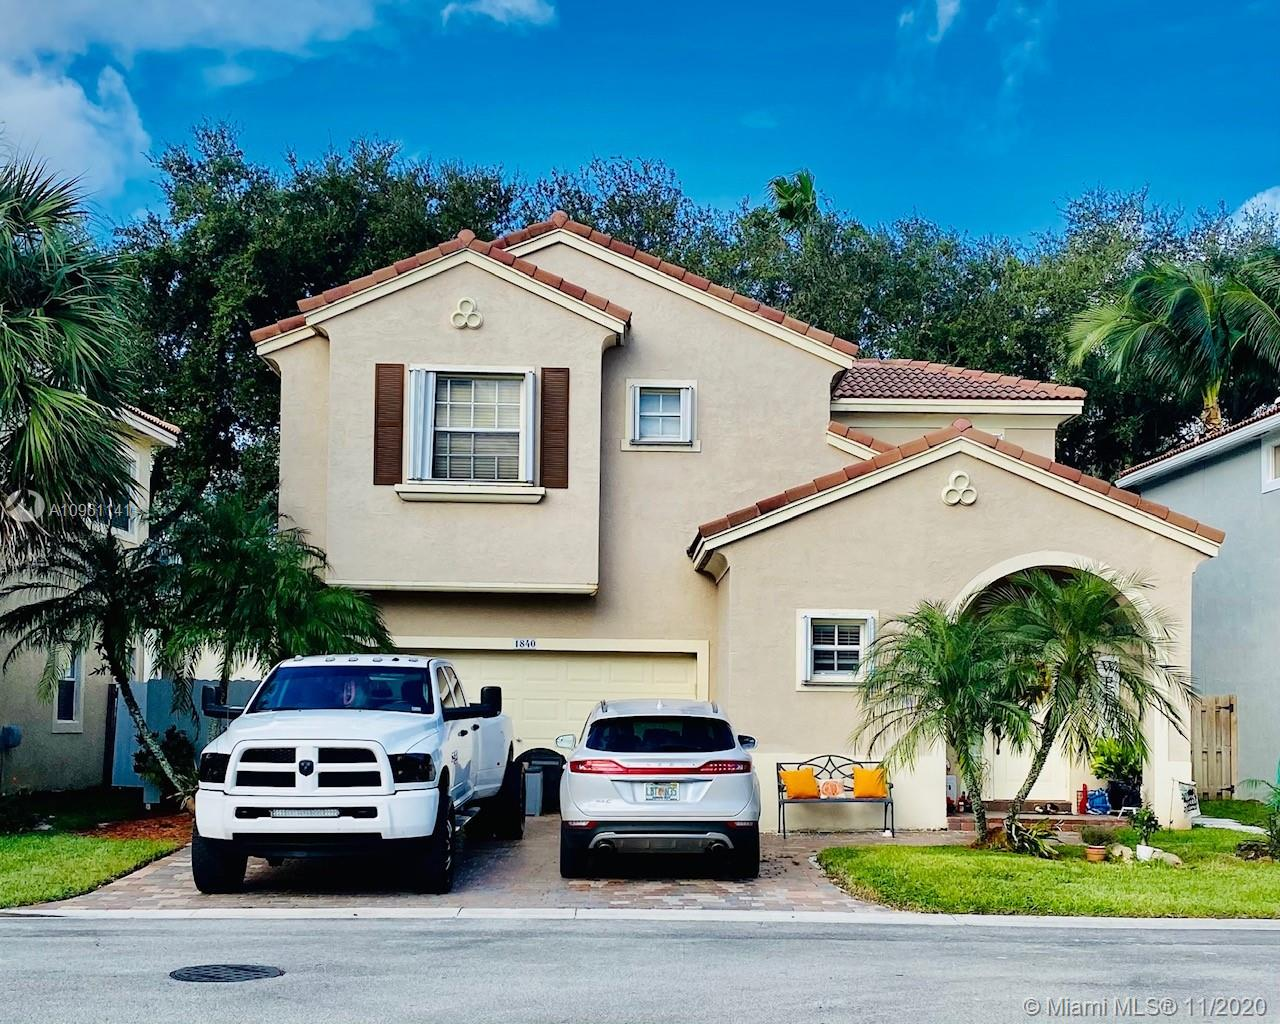 READY TO MOVE  THIS IS A BEAUTIFUL HOME IN A VERY QUIET NEIGHBORHOOD , HUGE  BACKYARD , NICE KITCHEN, TWO FLOORS, SPACIOUS ROOMS, VERY WELH MATEINIMENT , LOW HOA THAT INCLUDED, LAWN, CABLE, INTERNET CLUBHOUSE, GYM, TENNIS, POOL, PLAYGROUND,24/7 SECURITY